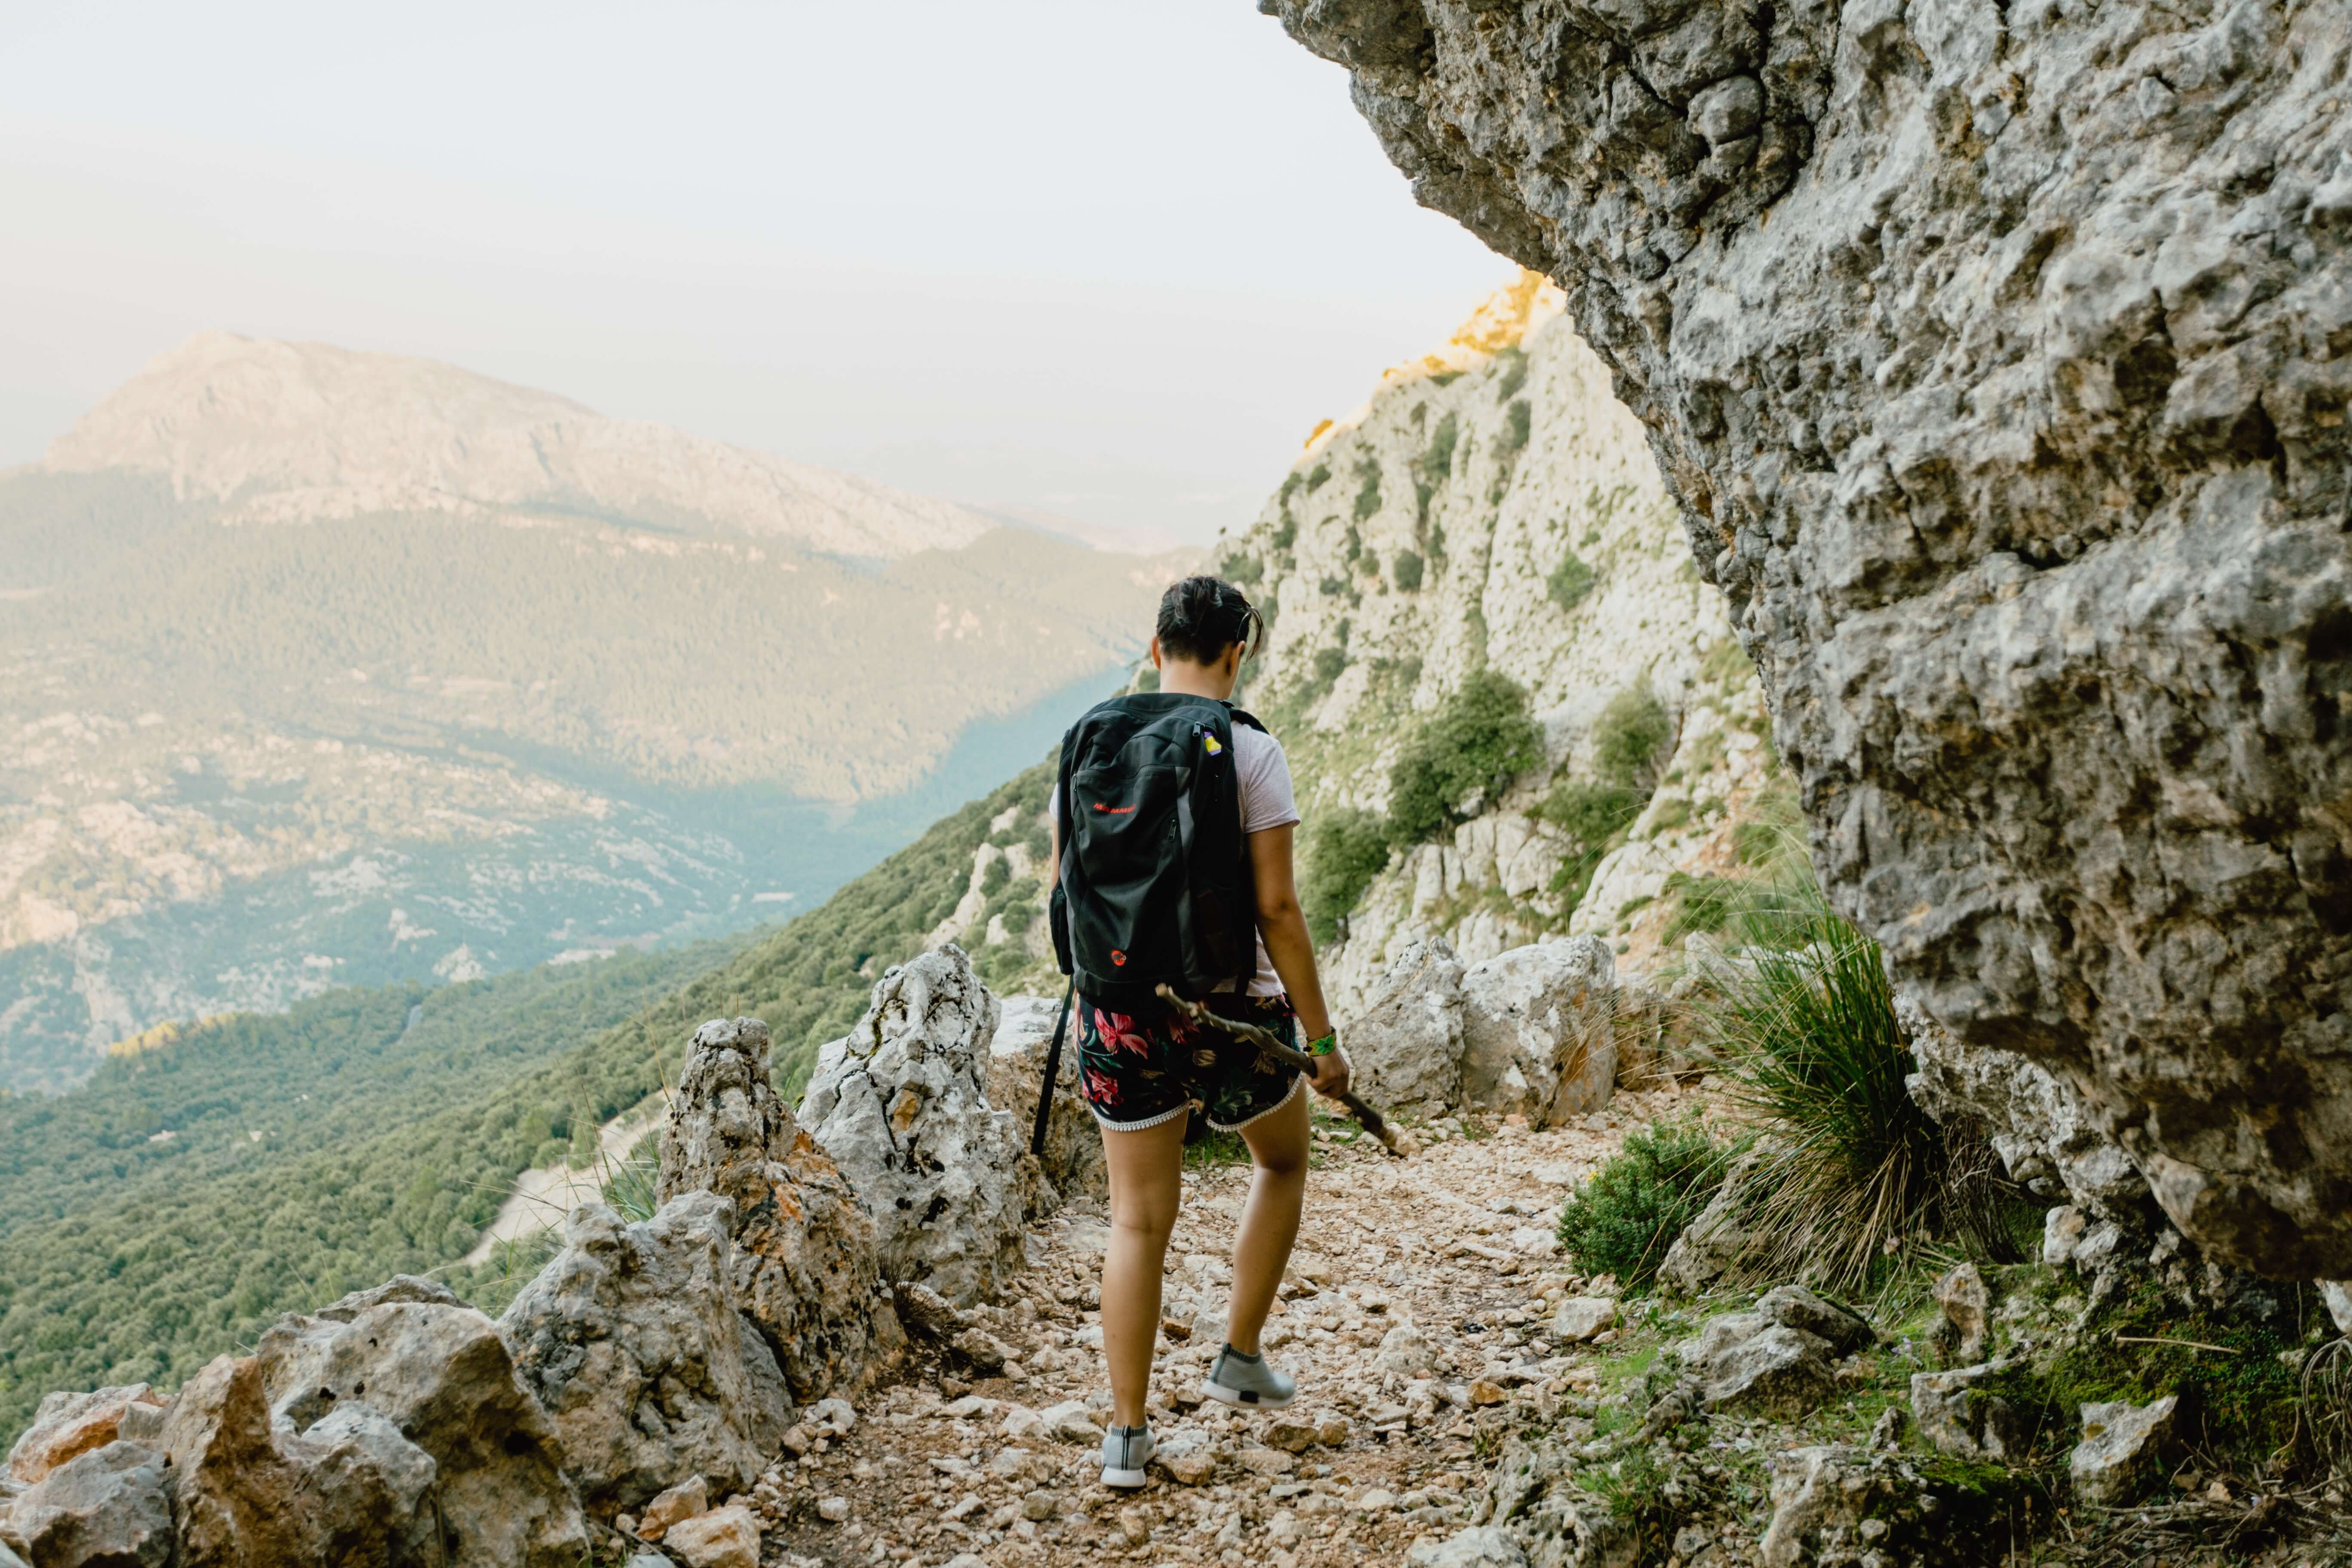 one of the adventure sports in spain is hiking